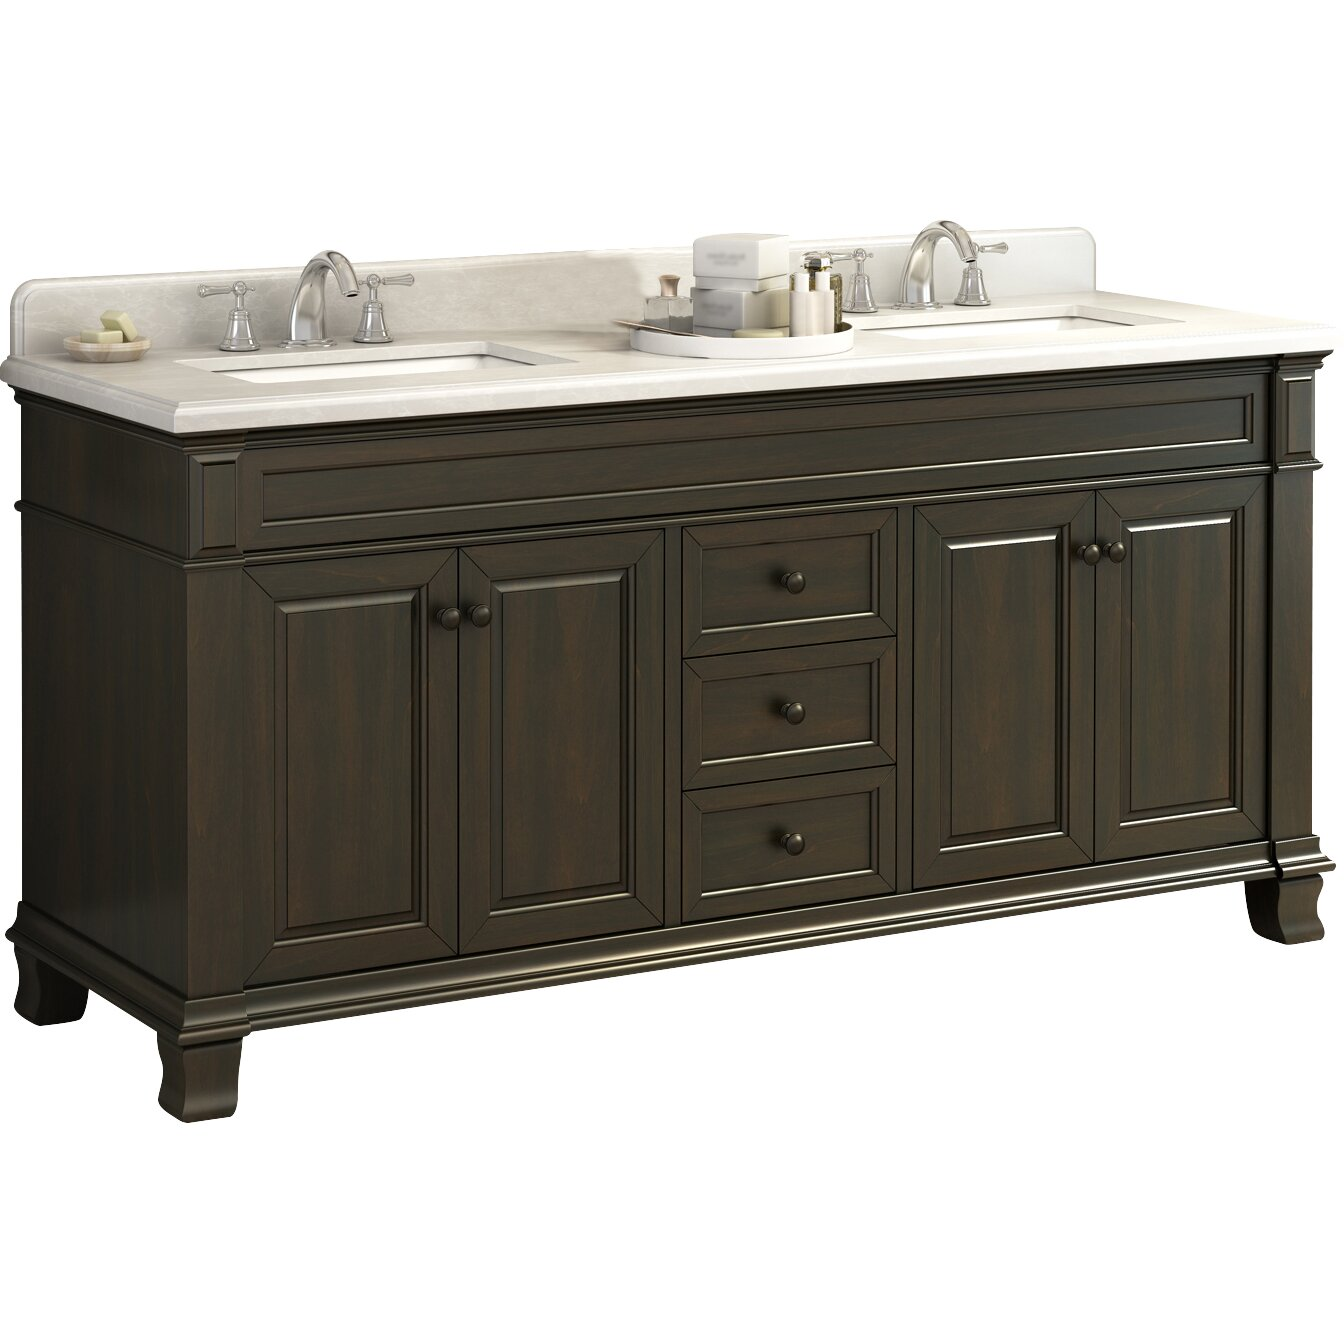 Lanza Kingsley 72 Double Bathroom Vanity Set Reviews